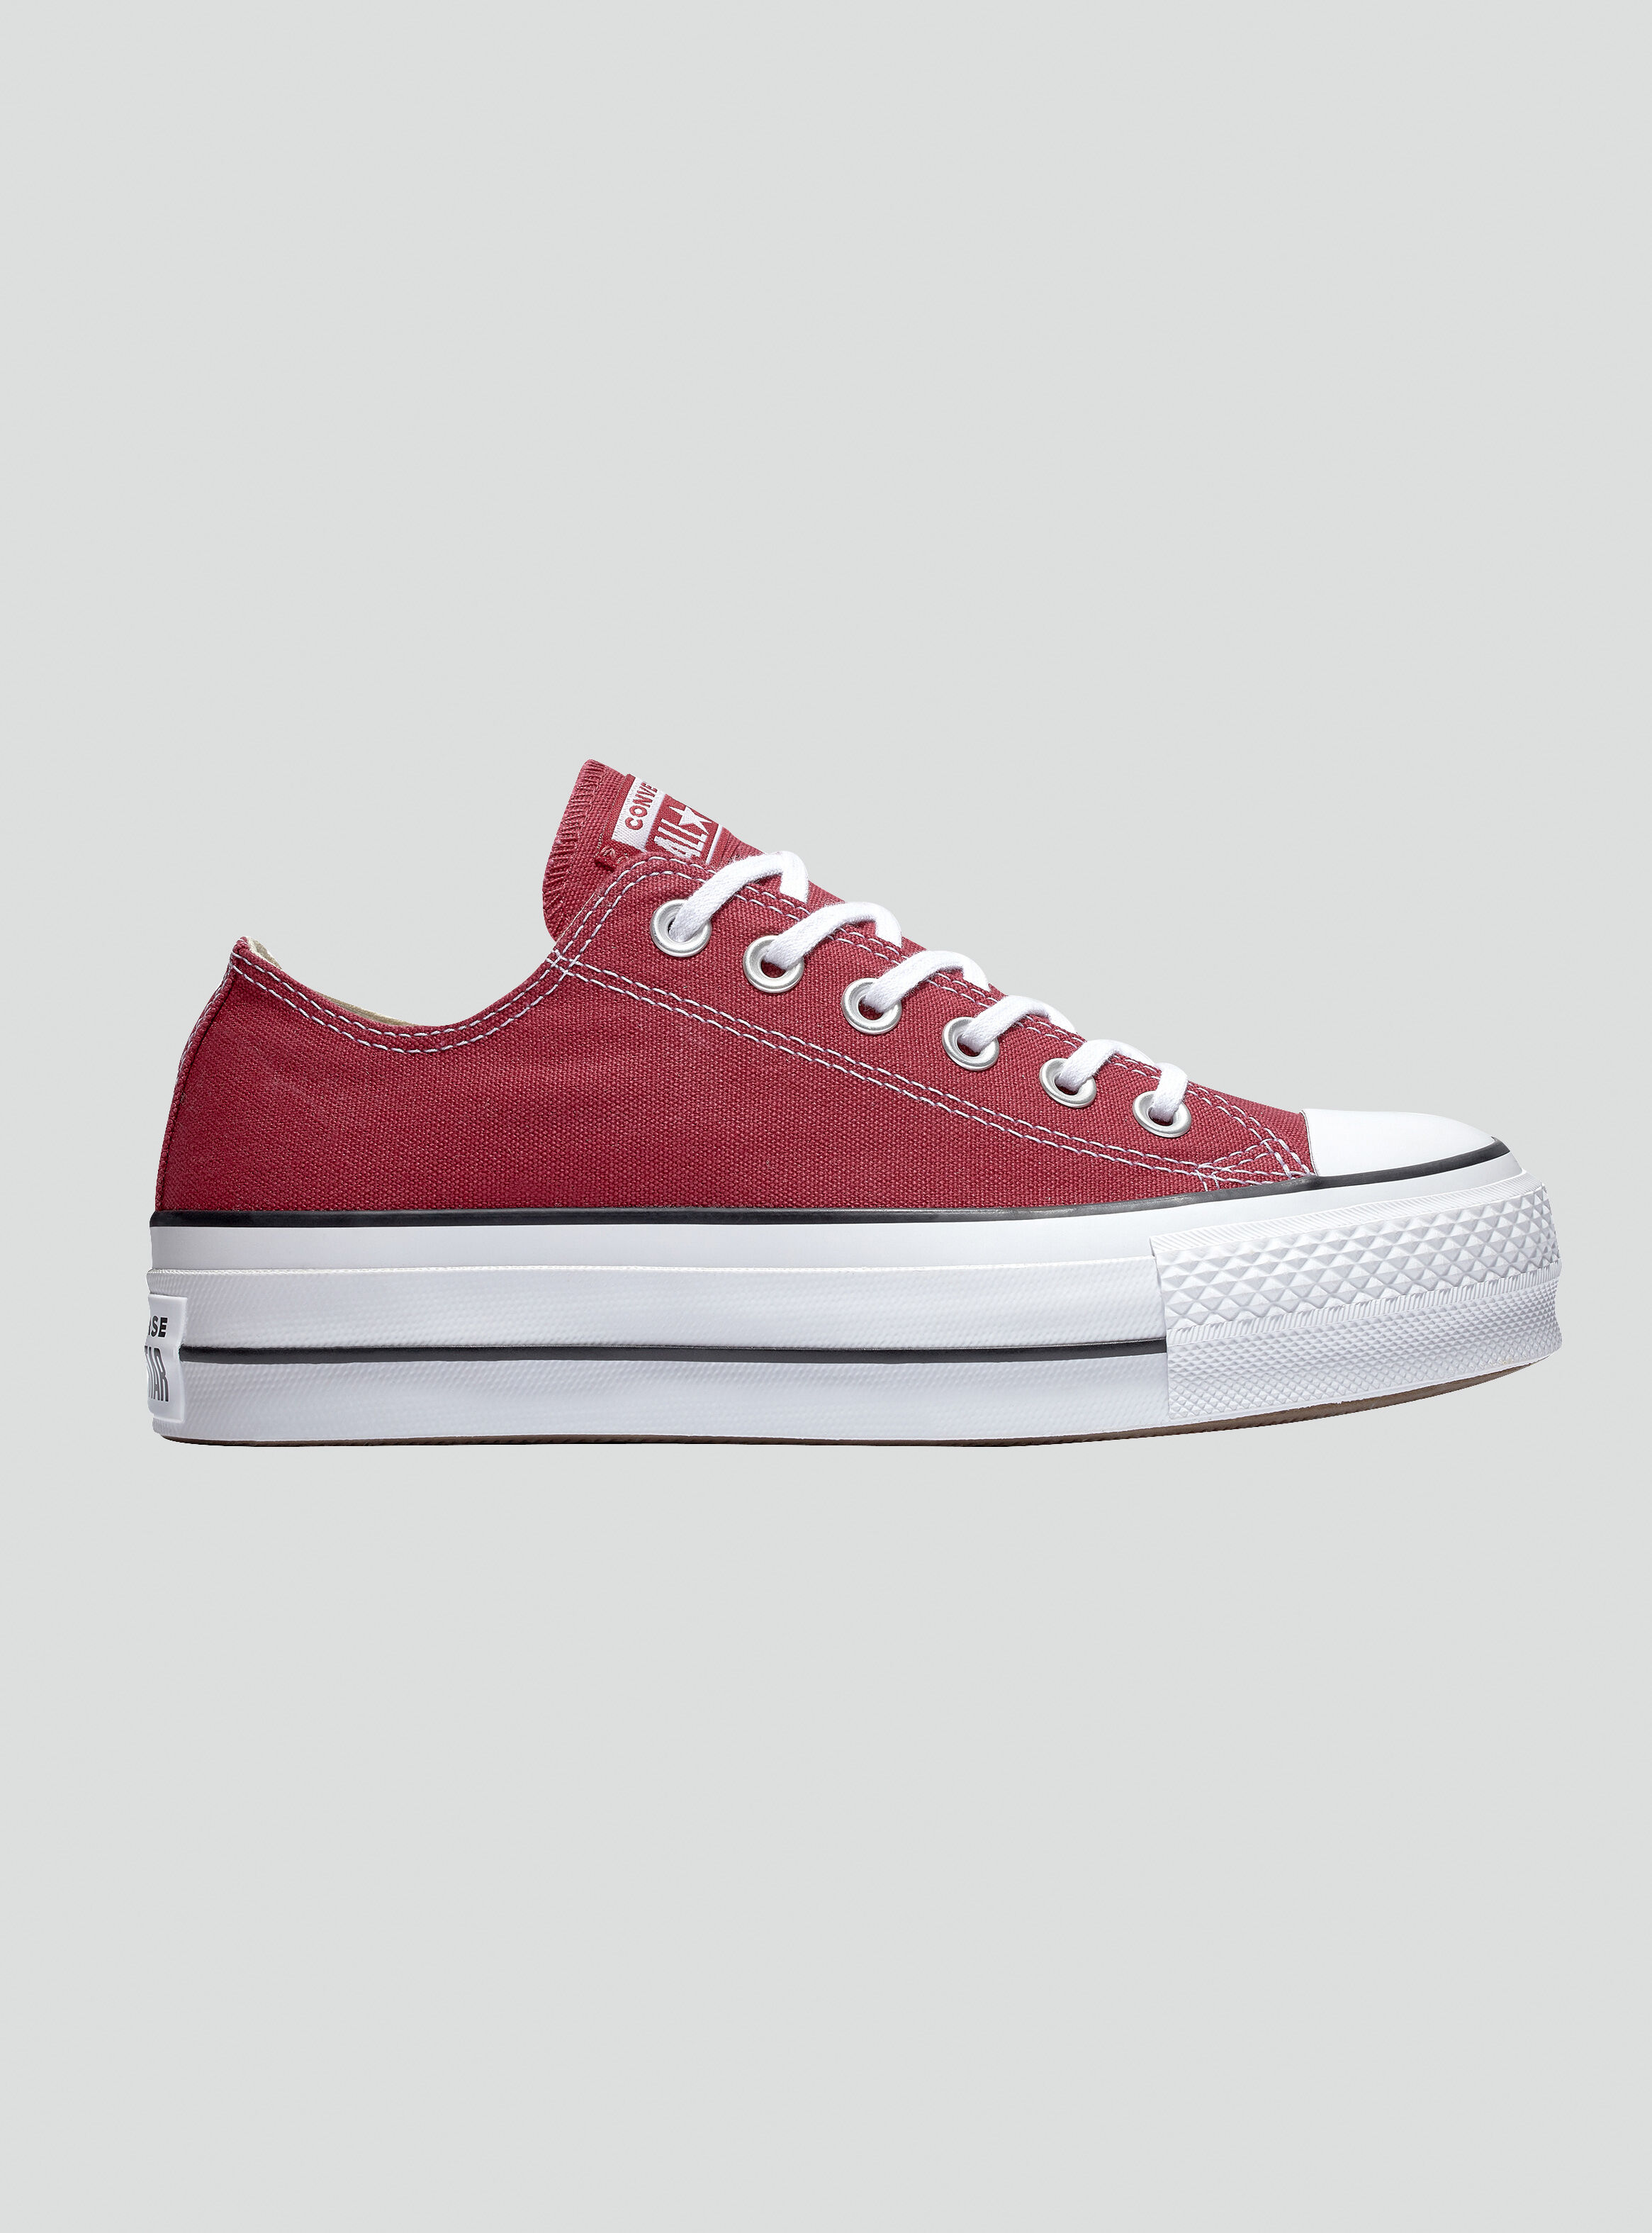 converse outlet mujer plataforma